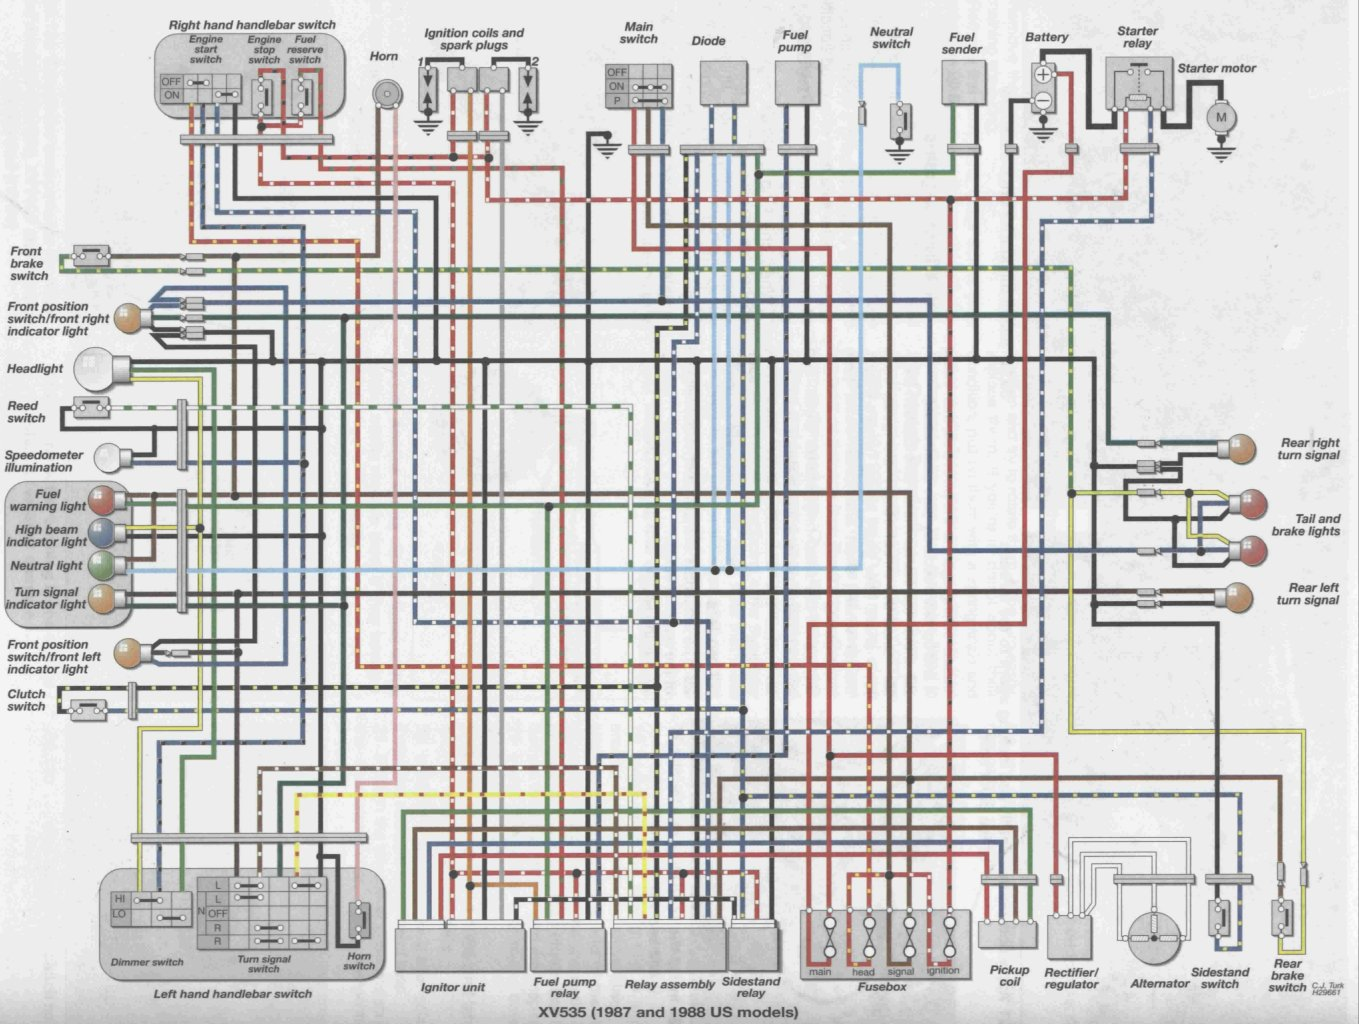 Honda Vt500c Wiring Diagram Another Blog About 1984 Shadow Color Diagrams Data Base Rh Alfrescosolutions Co